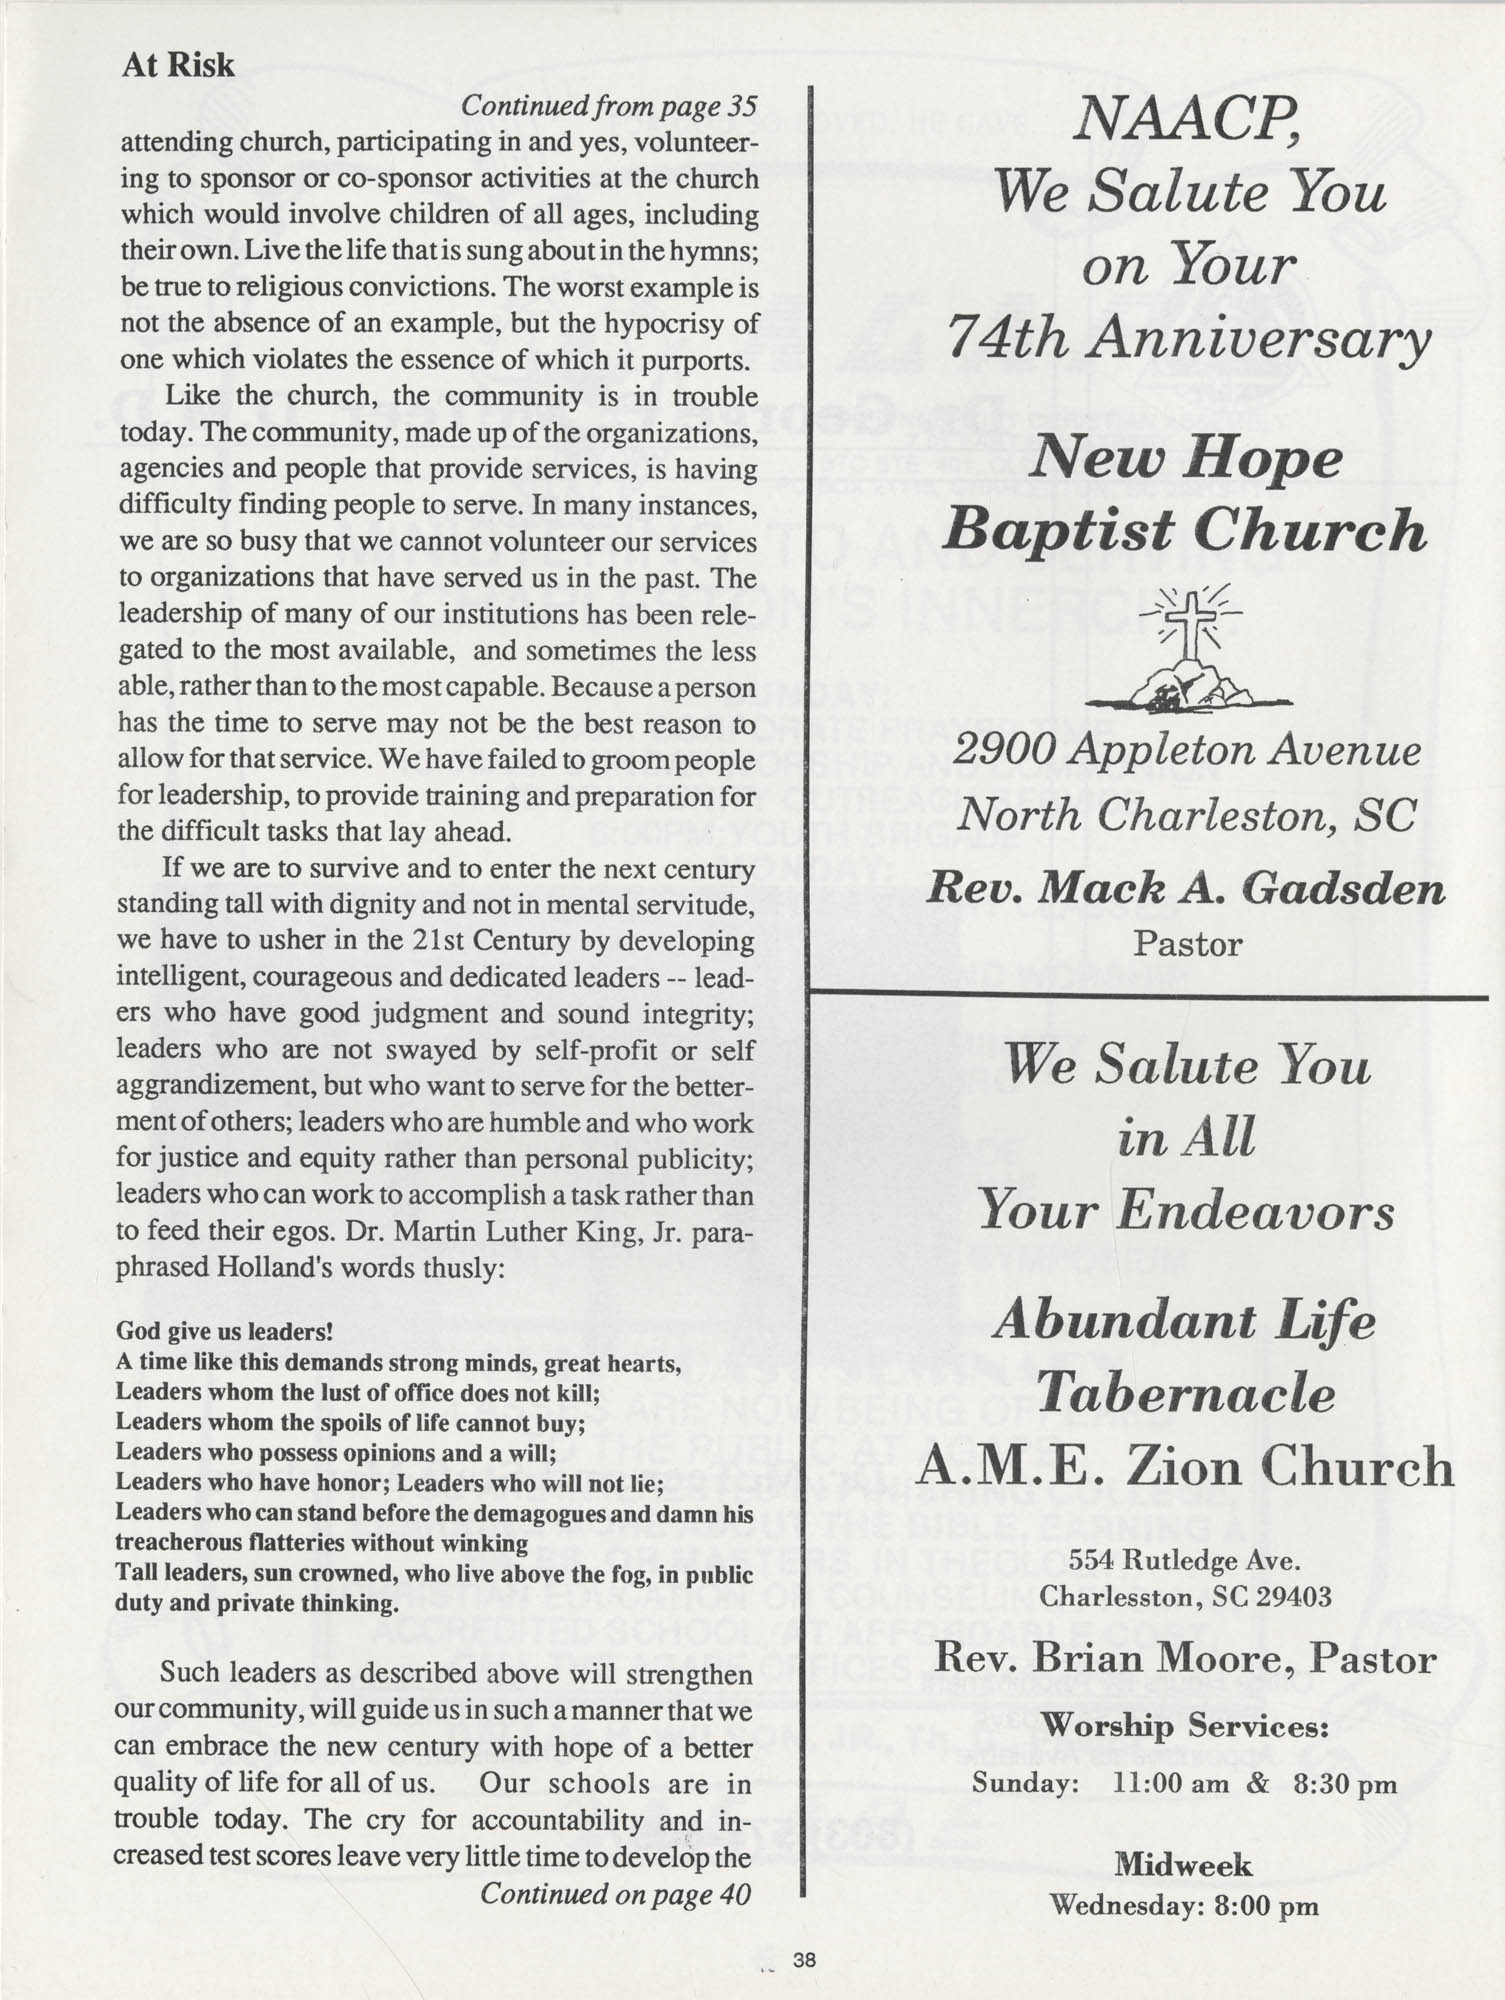 1990 NAACP Freedom Fund Magazine, Charleston Branch of the NAACP, 74th Anniversary, Page 38